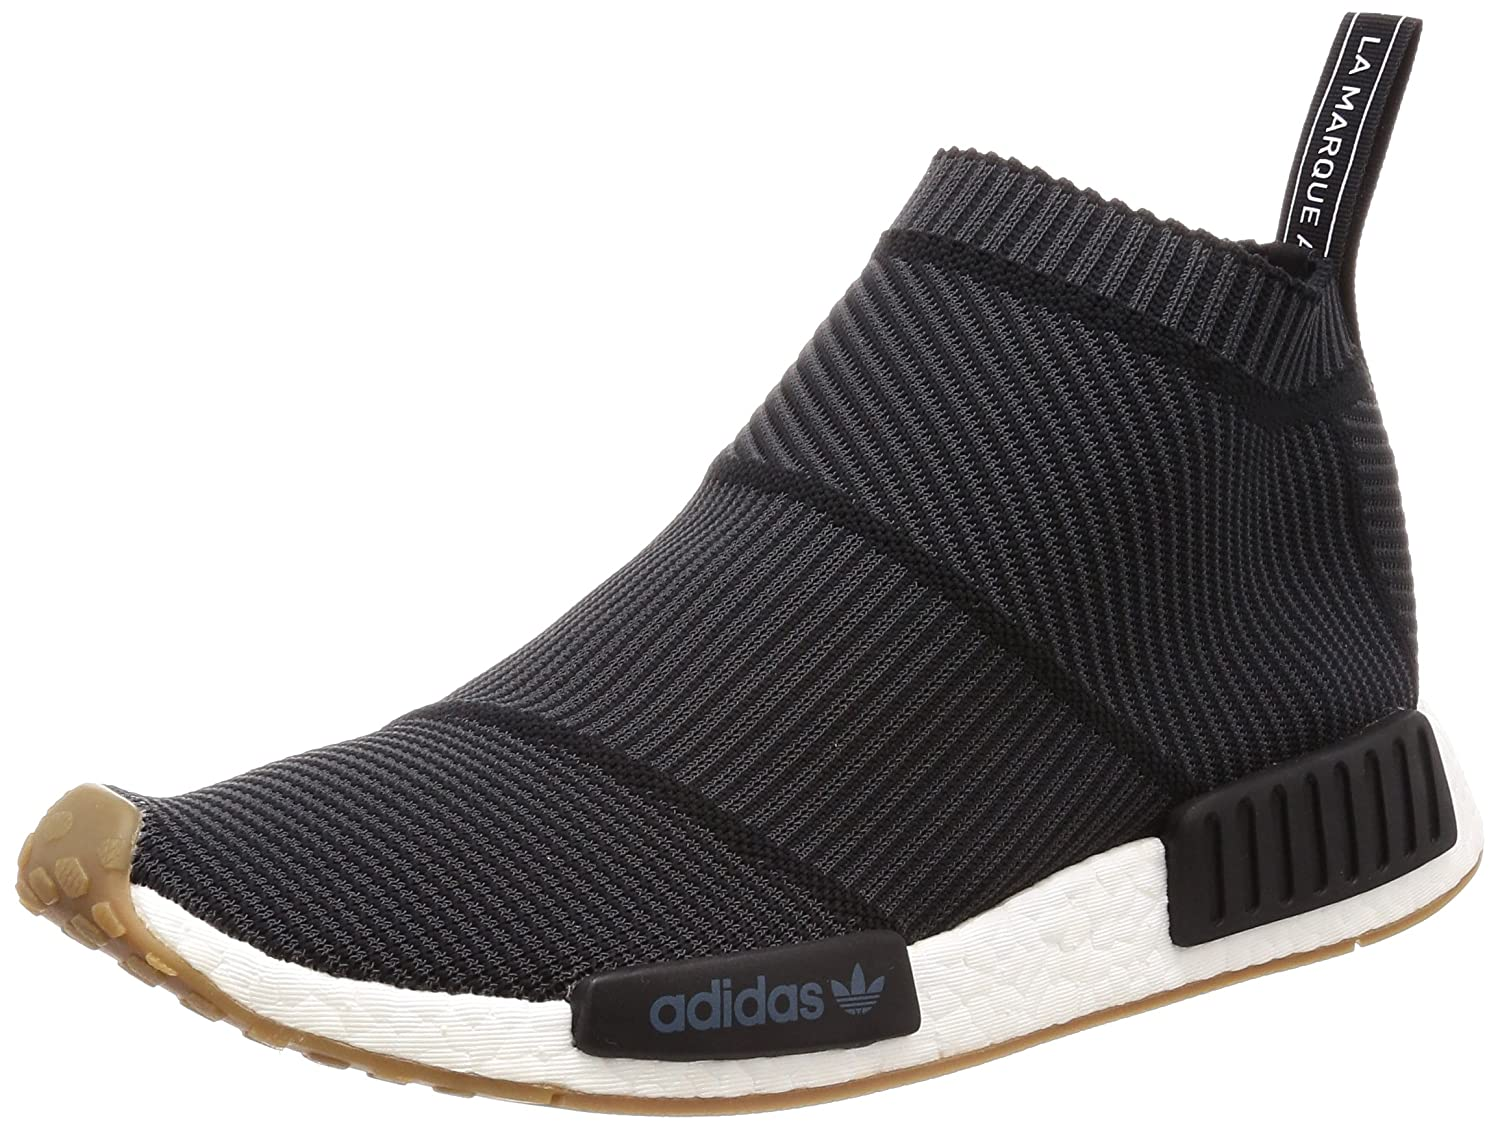 bd84a47cd adidas Originals NMD CS1 PK